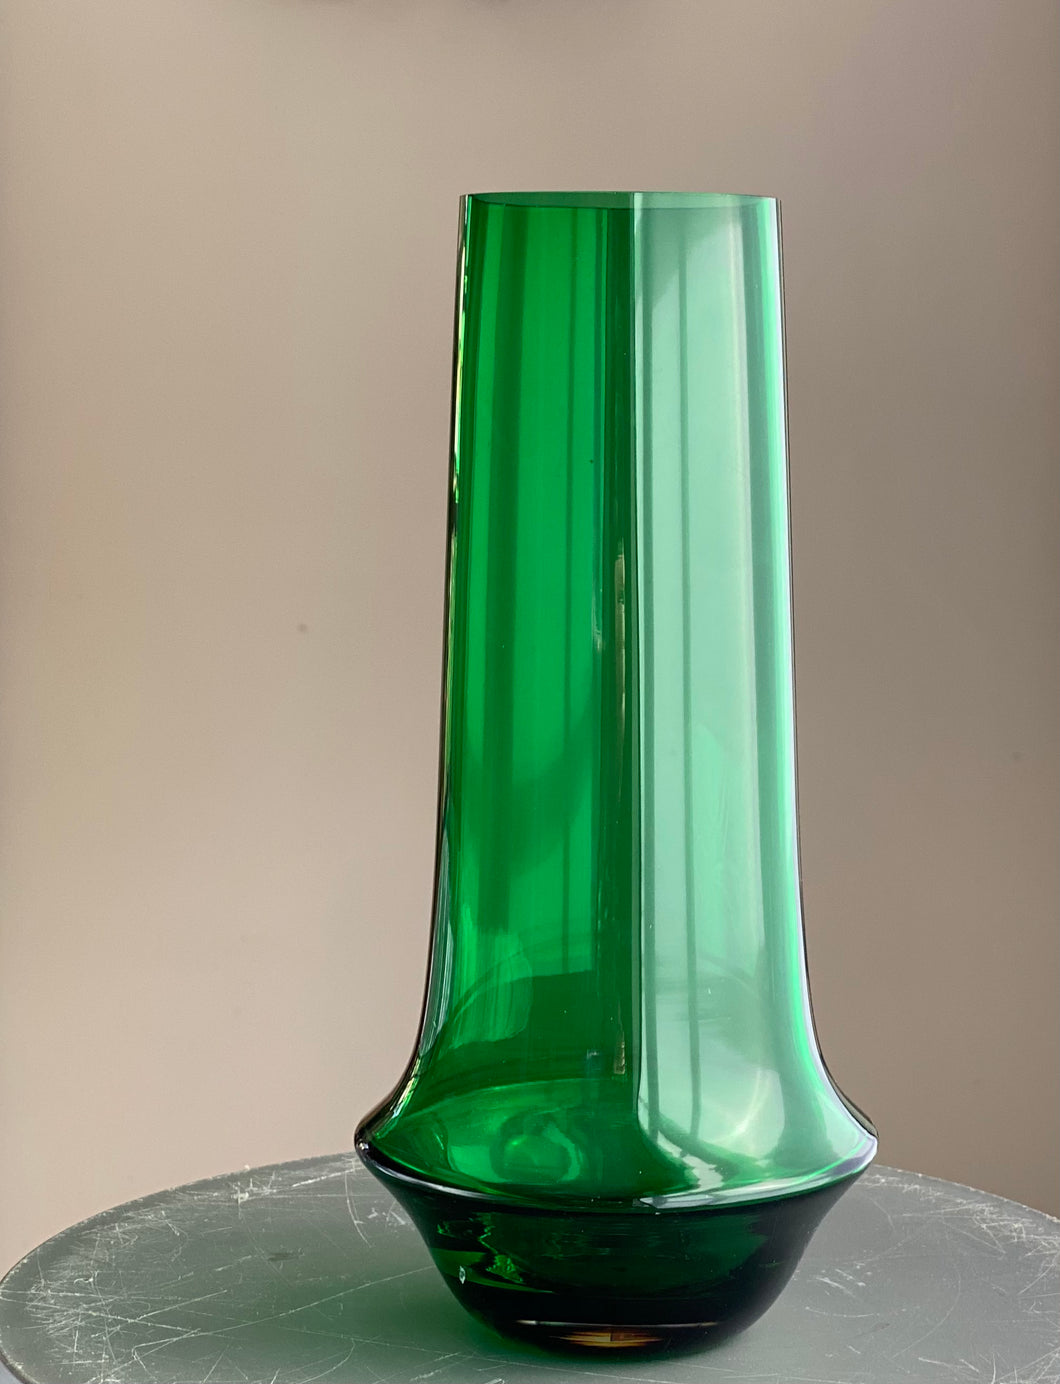 Tamara Aladin Riihimäen Lasi Vase Catalogue number 1378 vase 1960s 70s green glass.